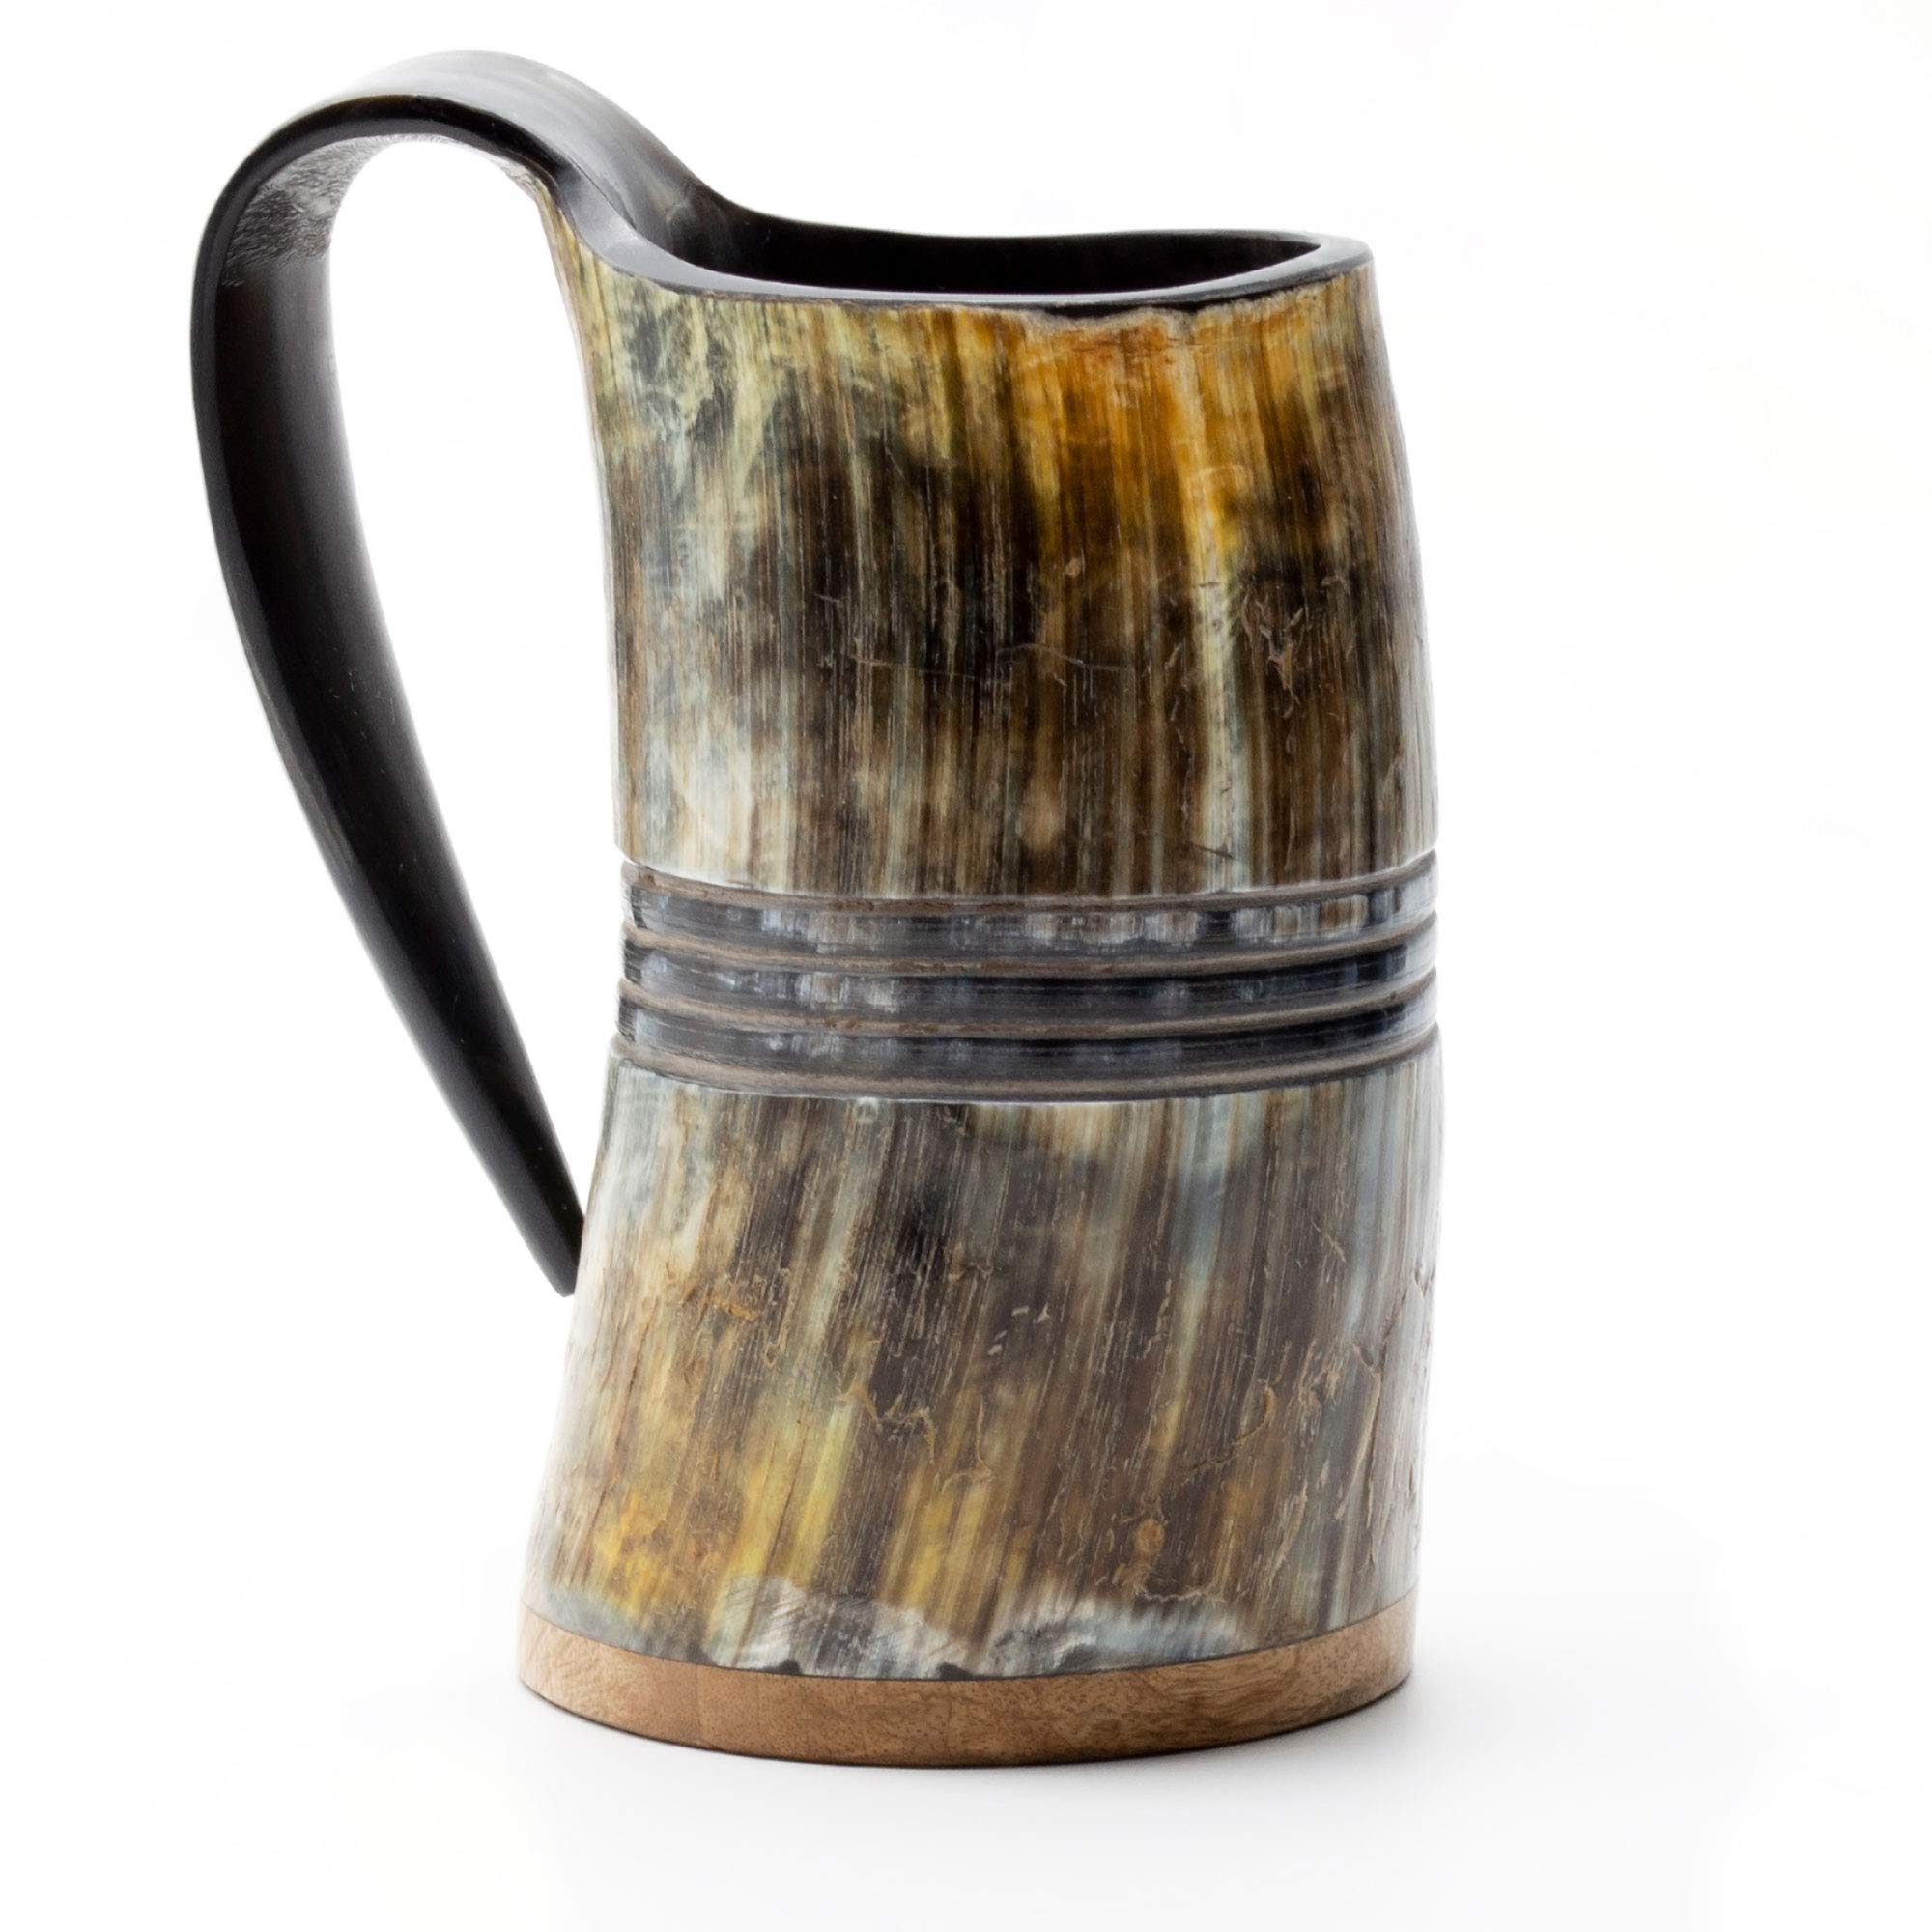 Norse Tradesman Genuine Viking Drinking Horn Mug - 100% Authentic Beer Horn Tankard w/Rosewood Bottom & Ring Engravings |''The Eternal'', Unpolished, Large